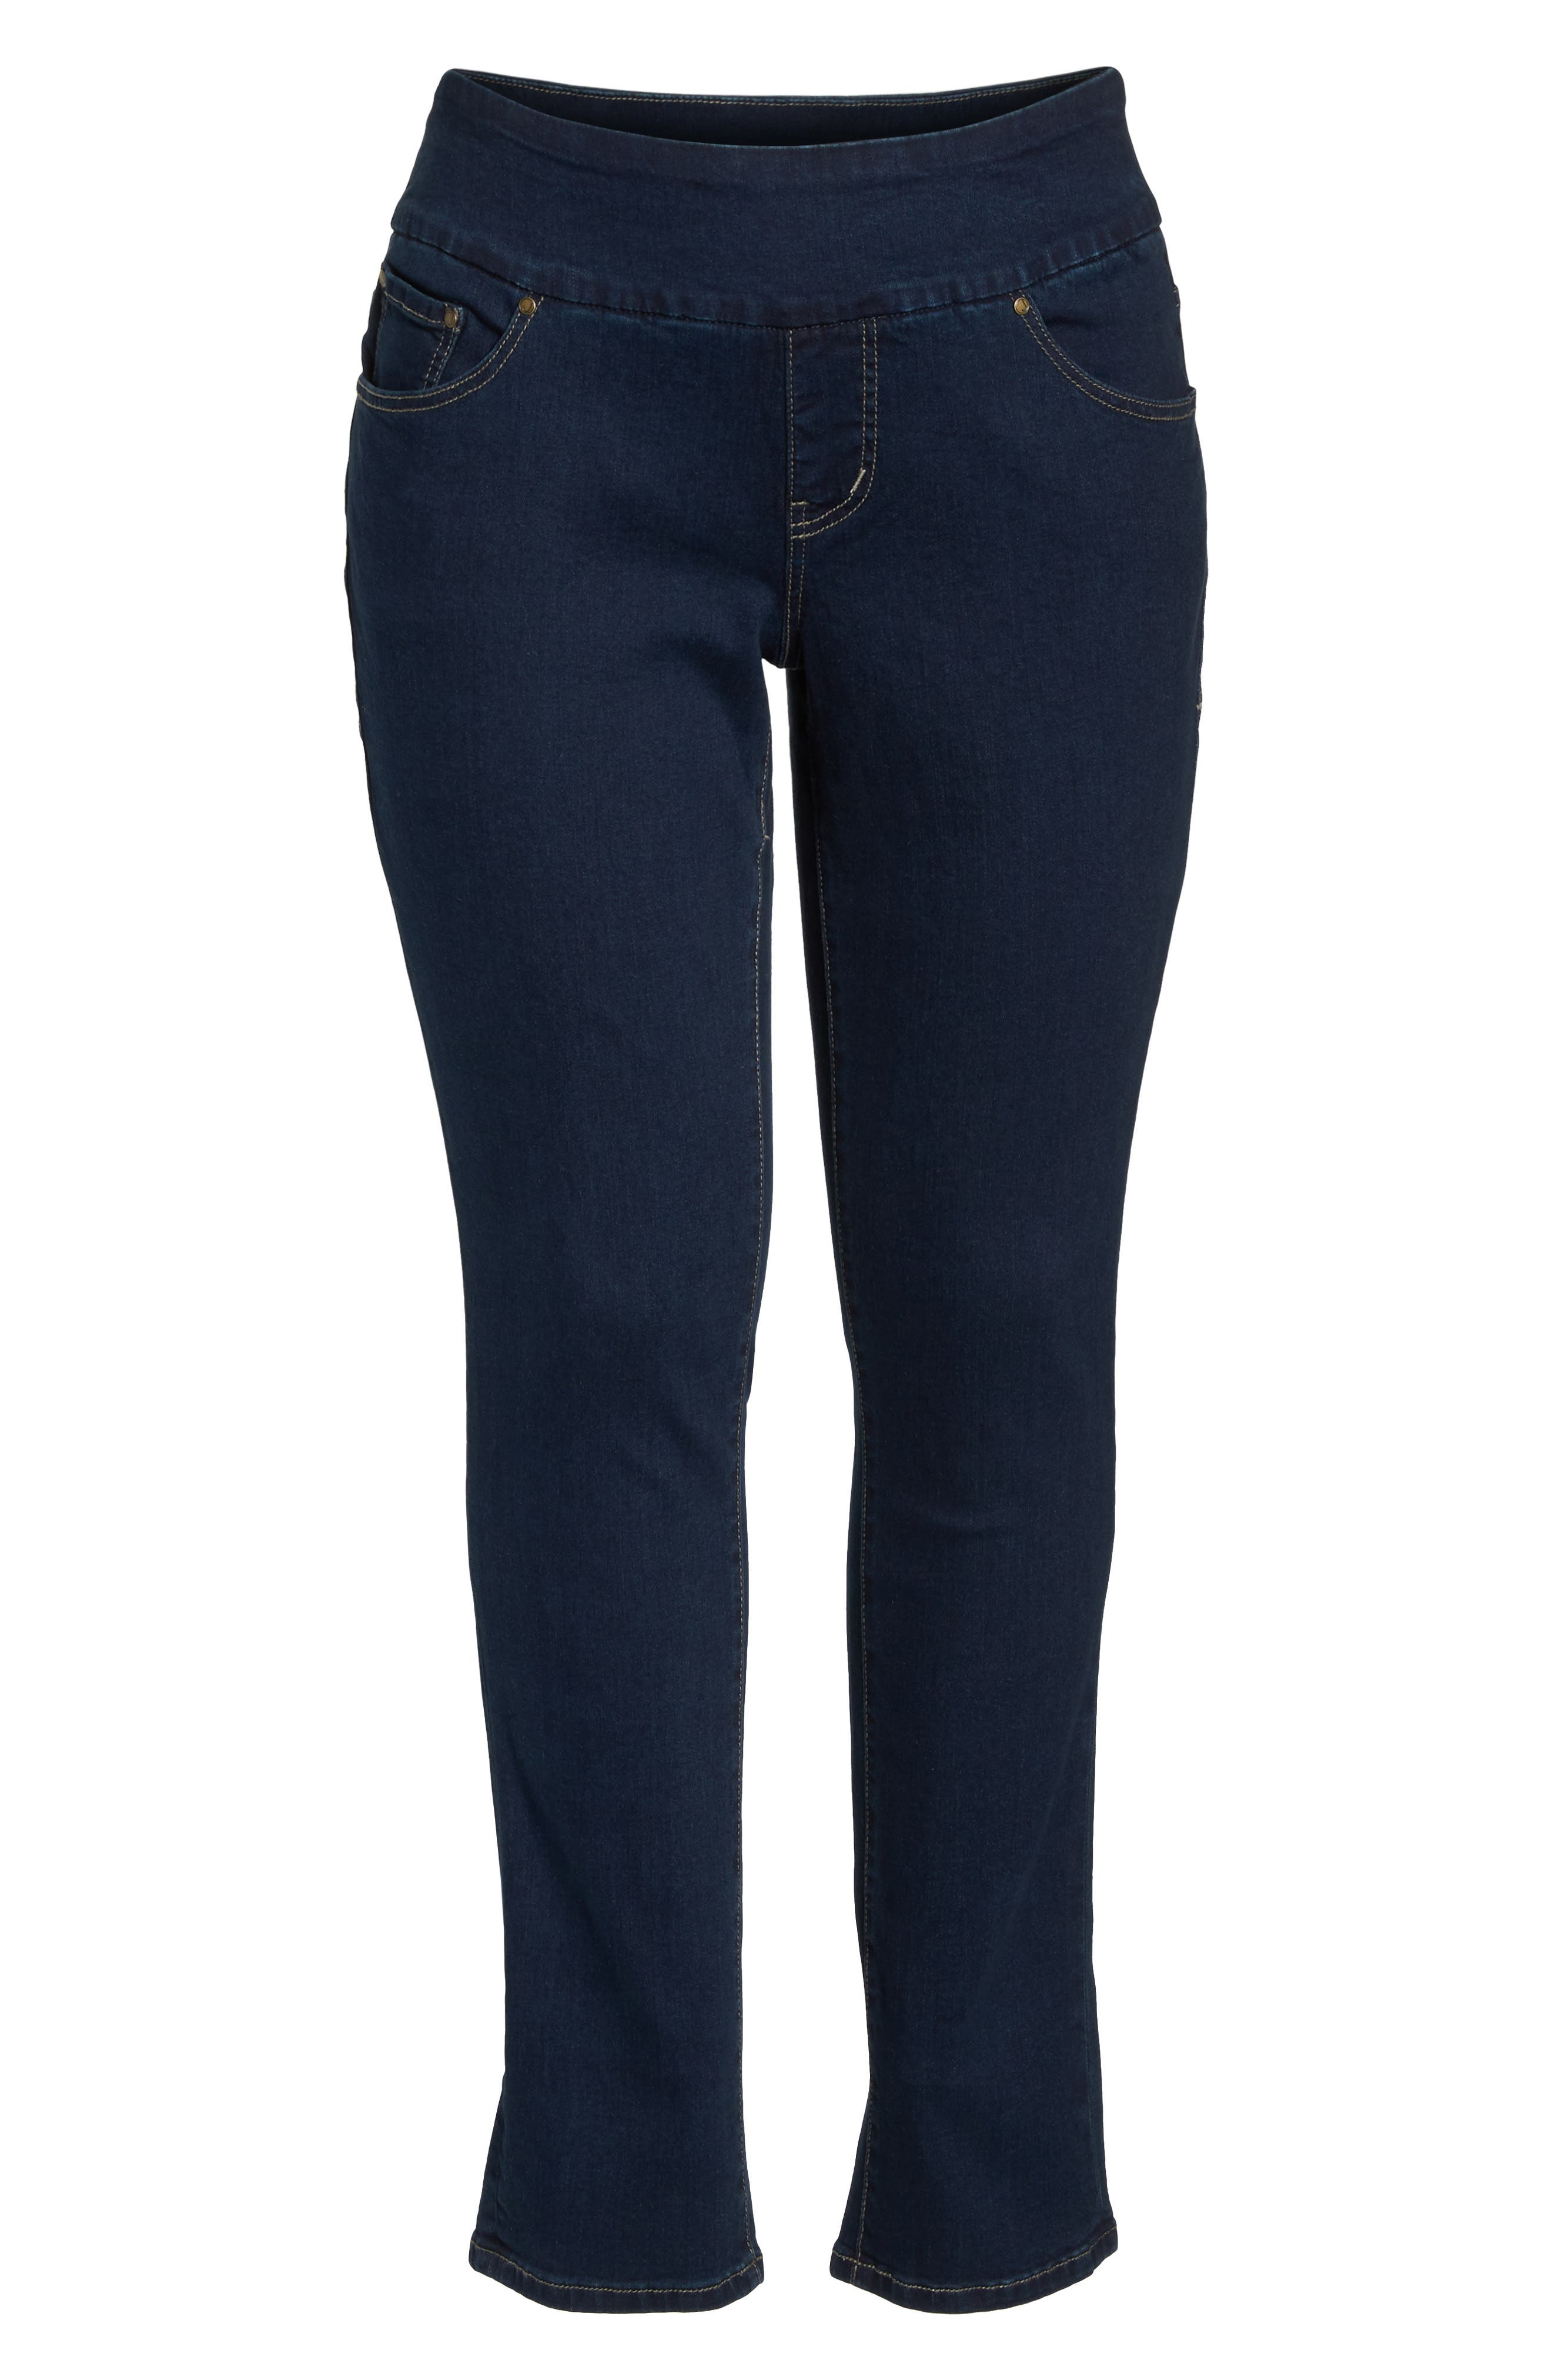 JAG JEANS, Paley Pull-On Bootcut Jeans, Alternate thumbnail 7, color, MED INDIGO